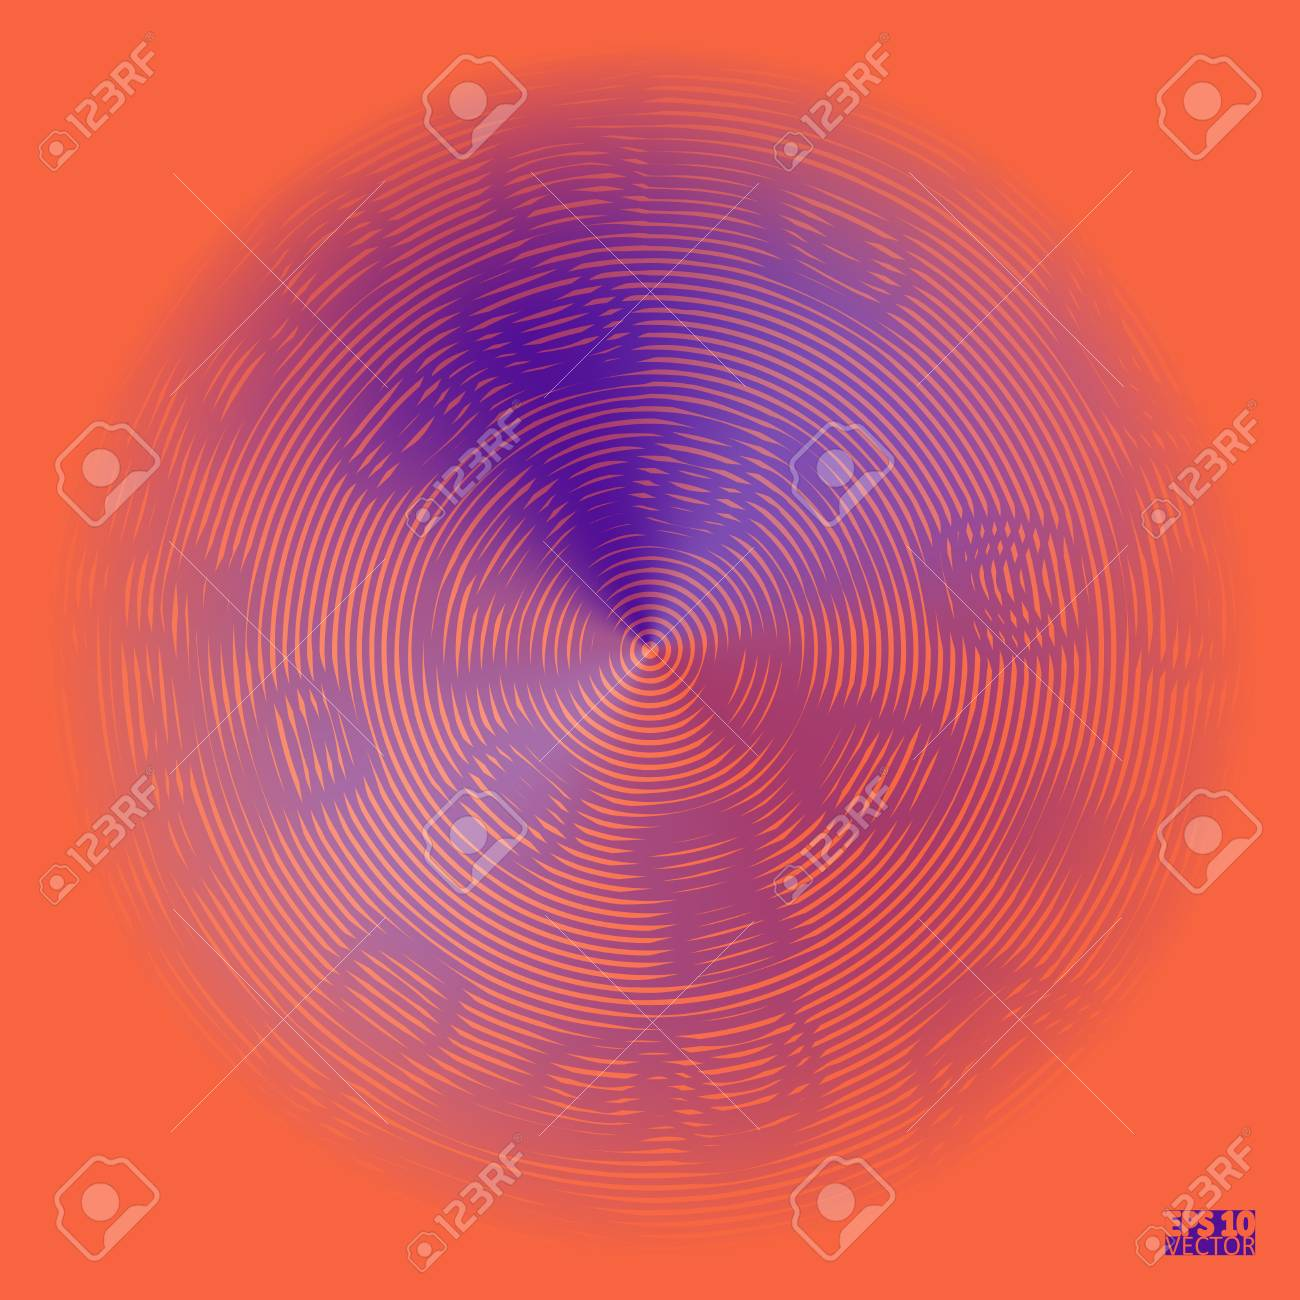 Tech futuristic abstract backgrounds, colorful circle. Eps10 Vector illustration - 125178680